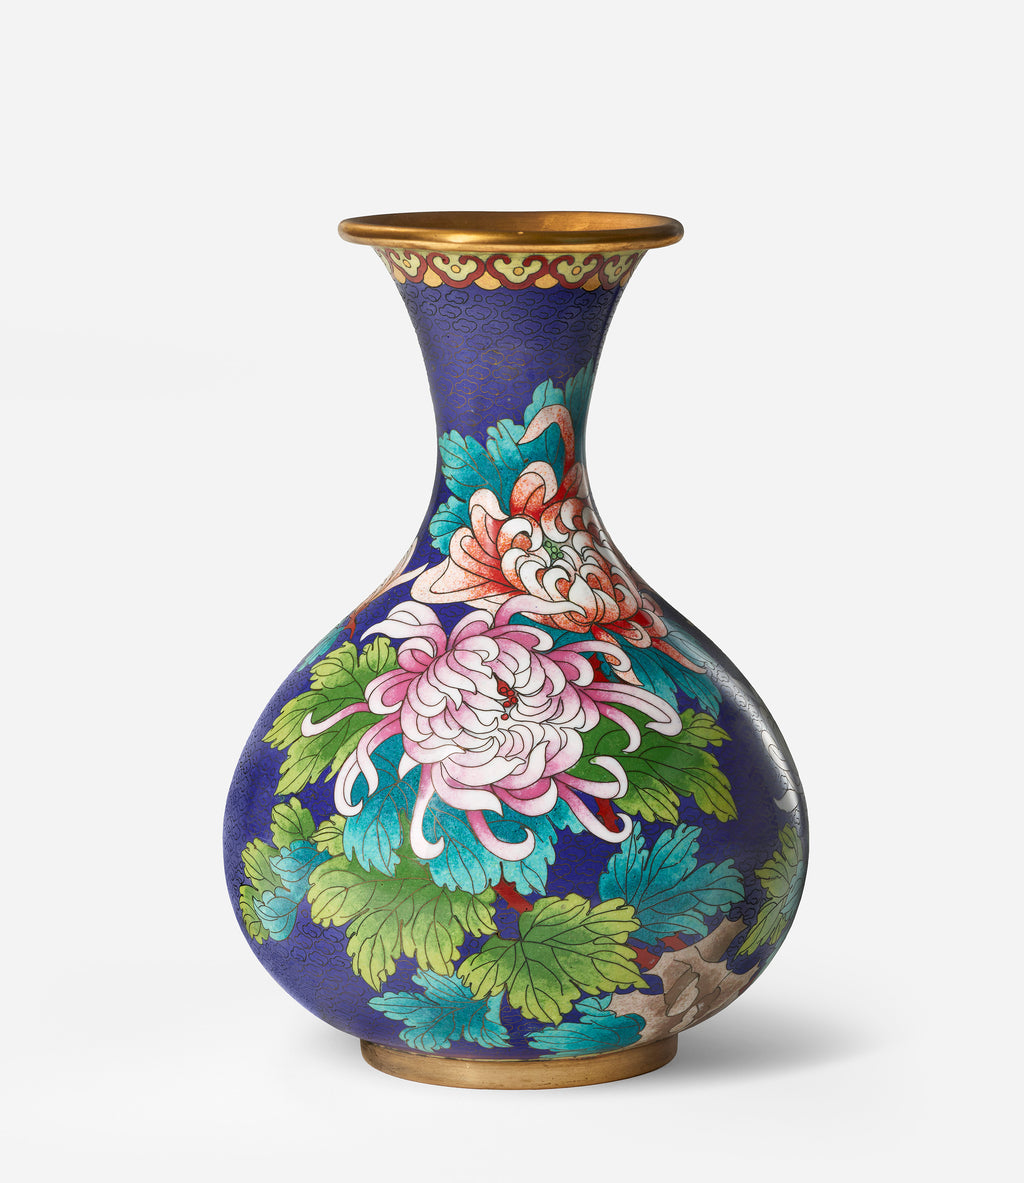 Poster - of a colorful Cloisonne vase from China